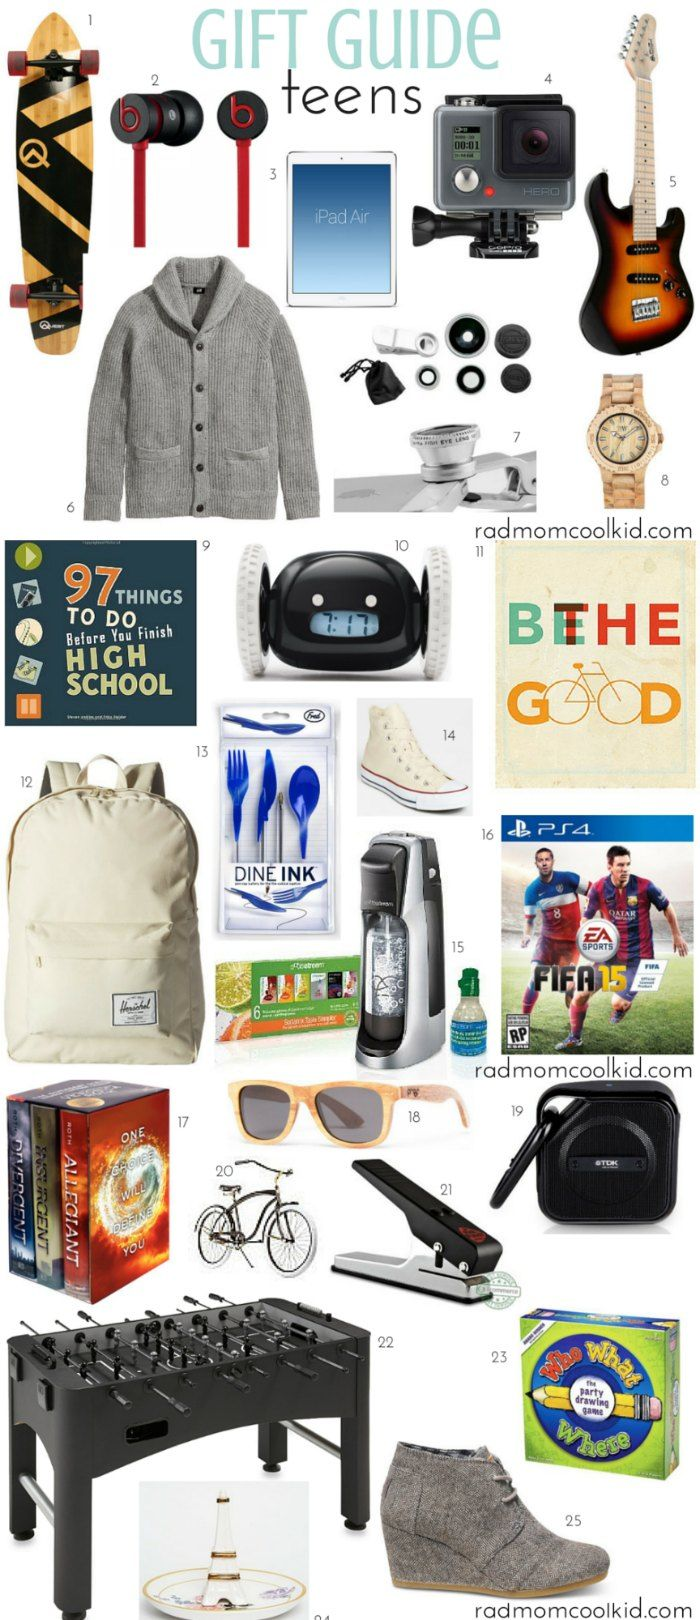 Exceptional Christmas Gift Ideas 2014 For Teens Part - 10: Gift Guide: Teens Www.radmomcoolkid.com